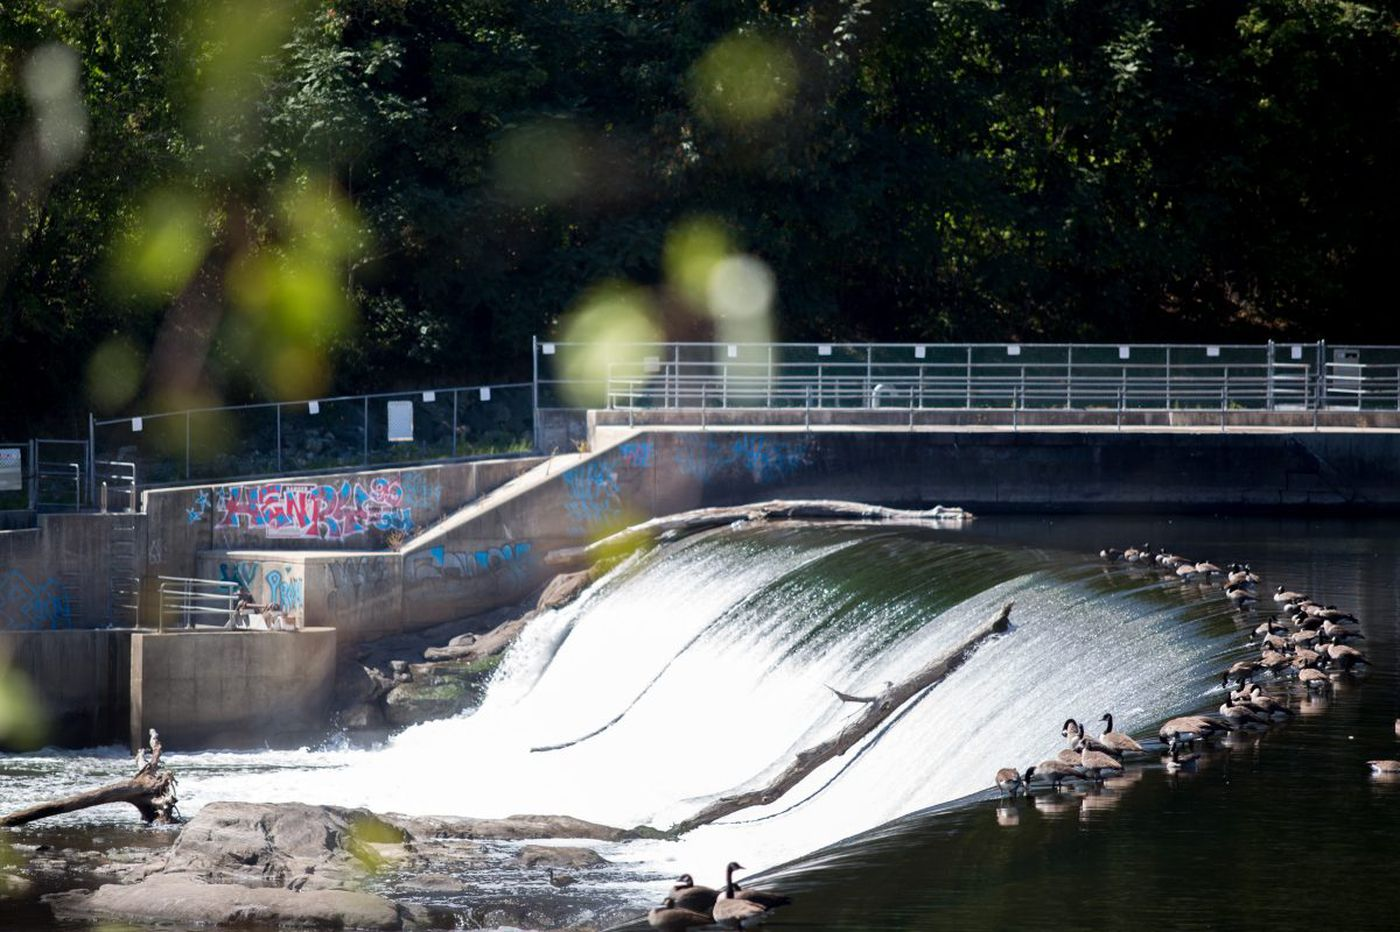 New life for the dammed? Philly issues call for hydro-energy projects